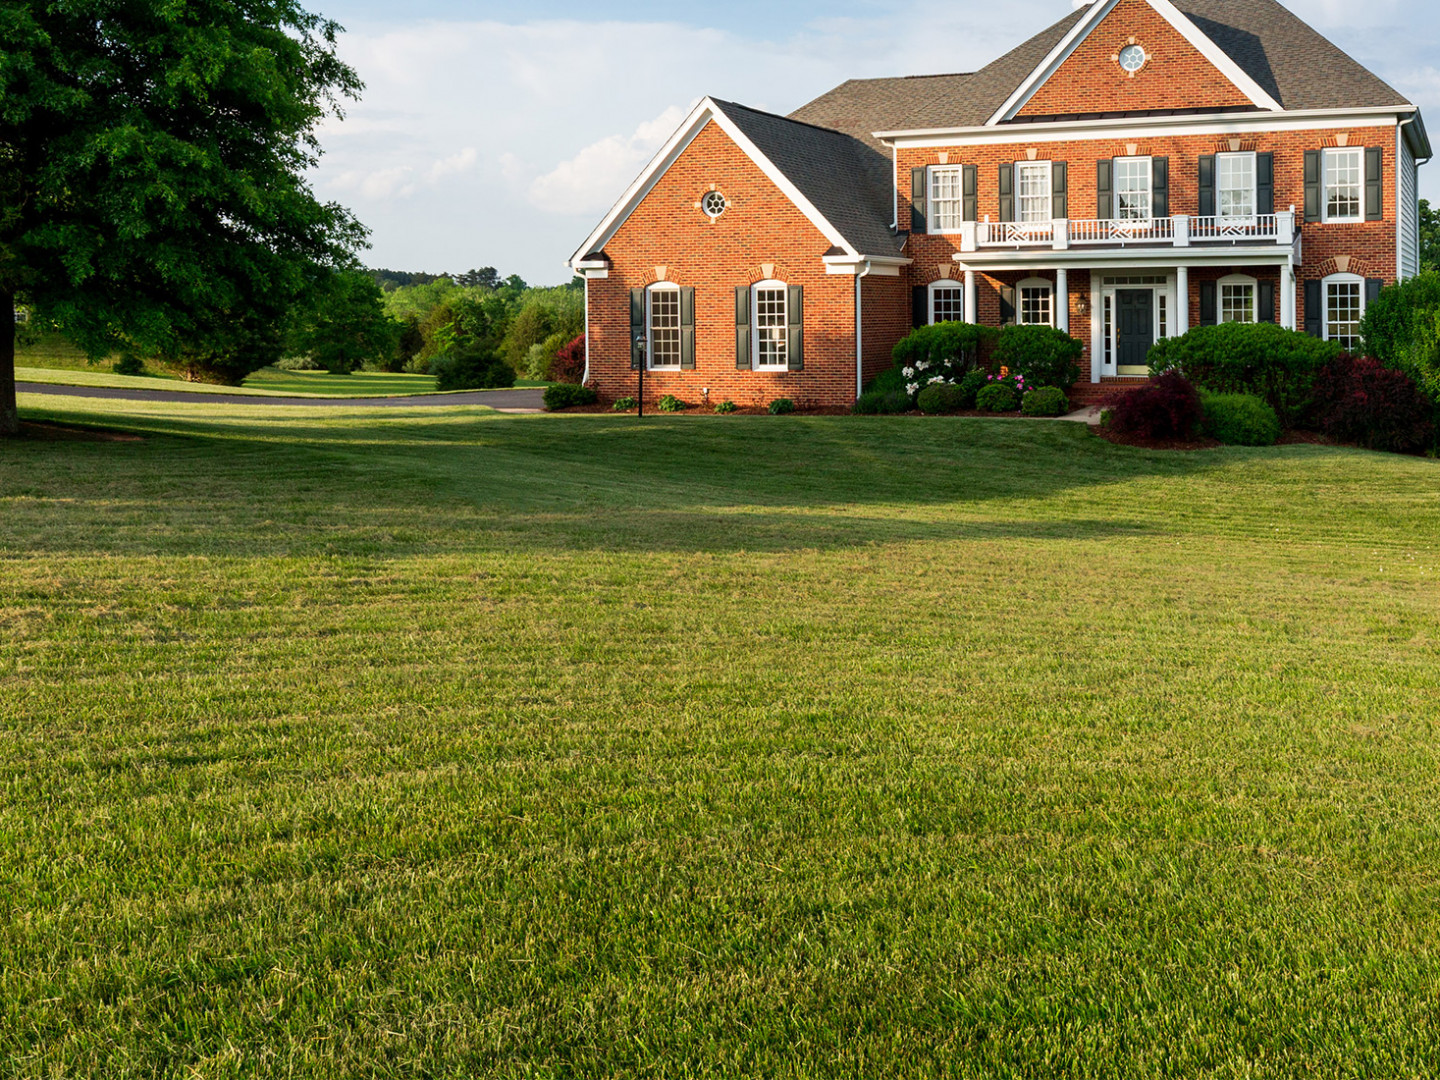 See What Our Lawn Fertilization Experts Can Do